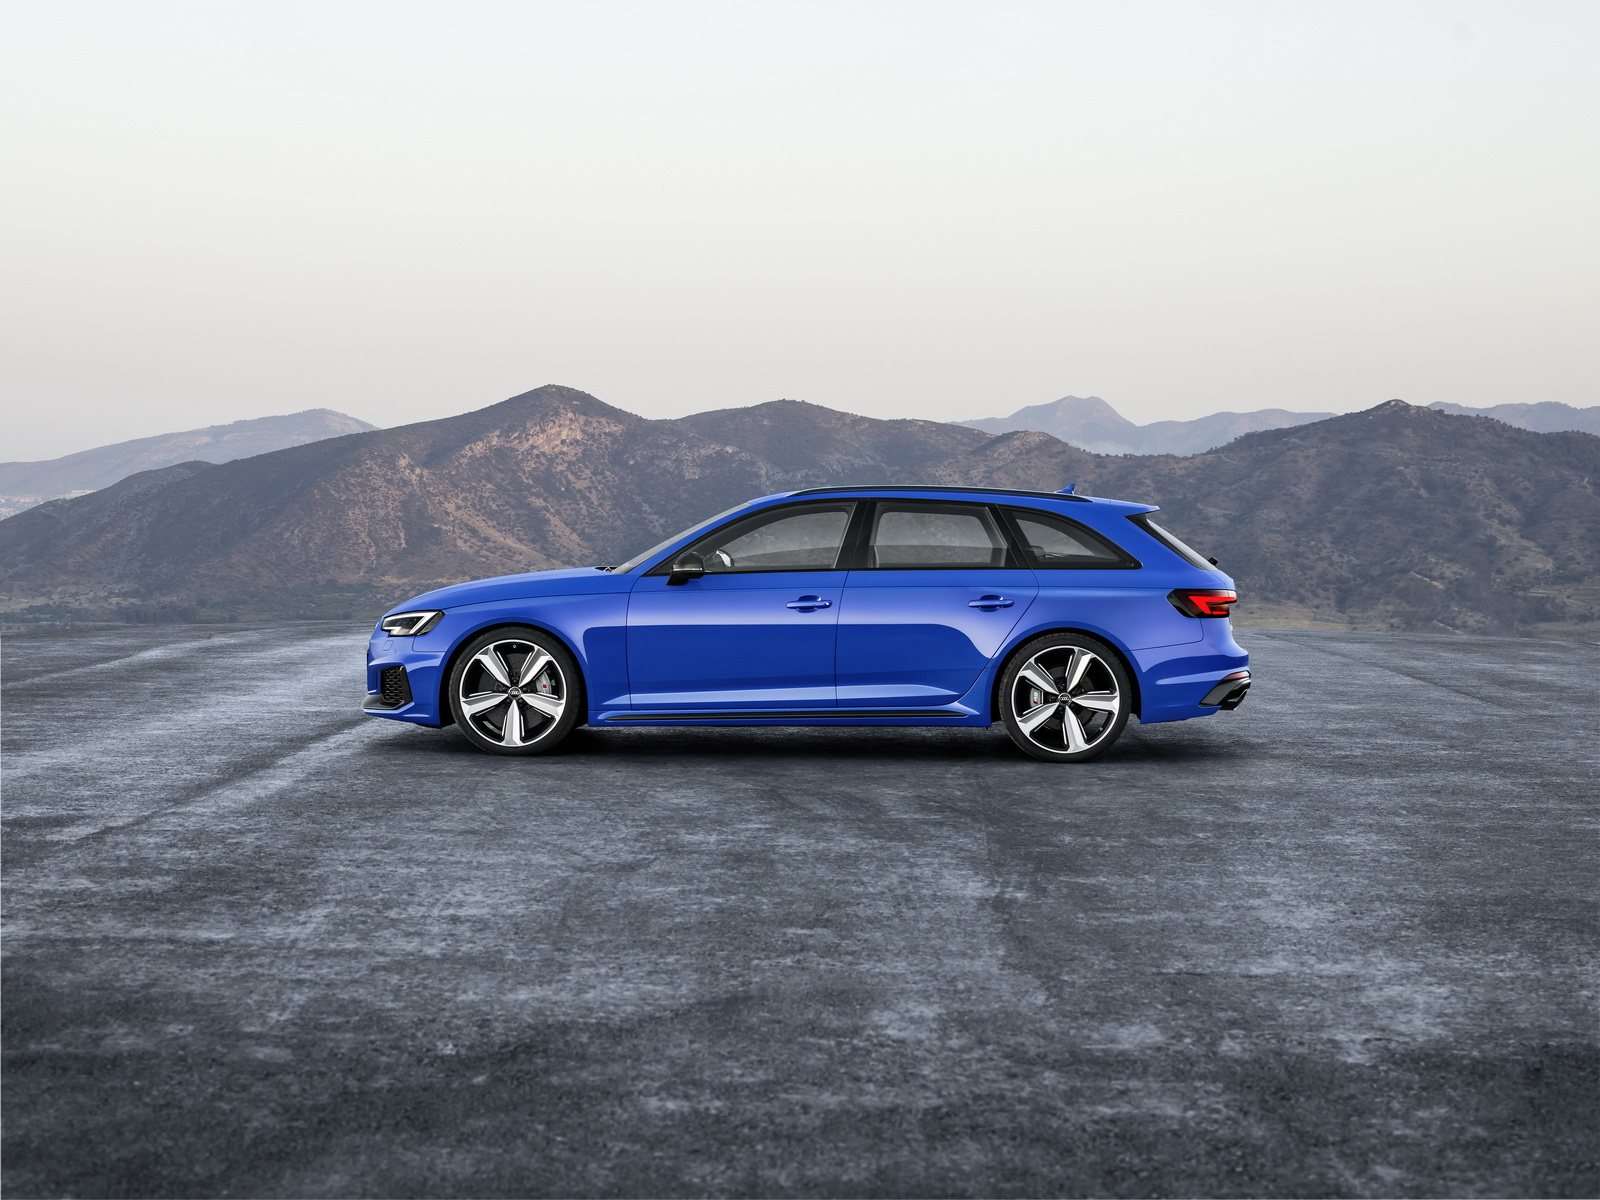 2018 Audi RS4 Avant to revive the old charm of the Audi wagon